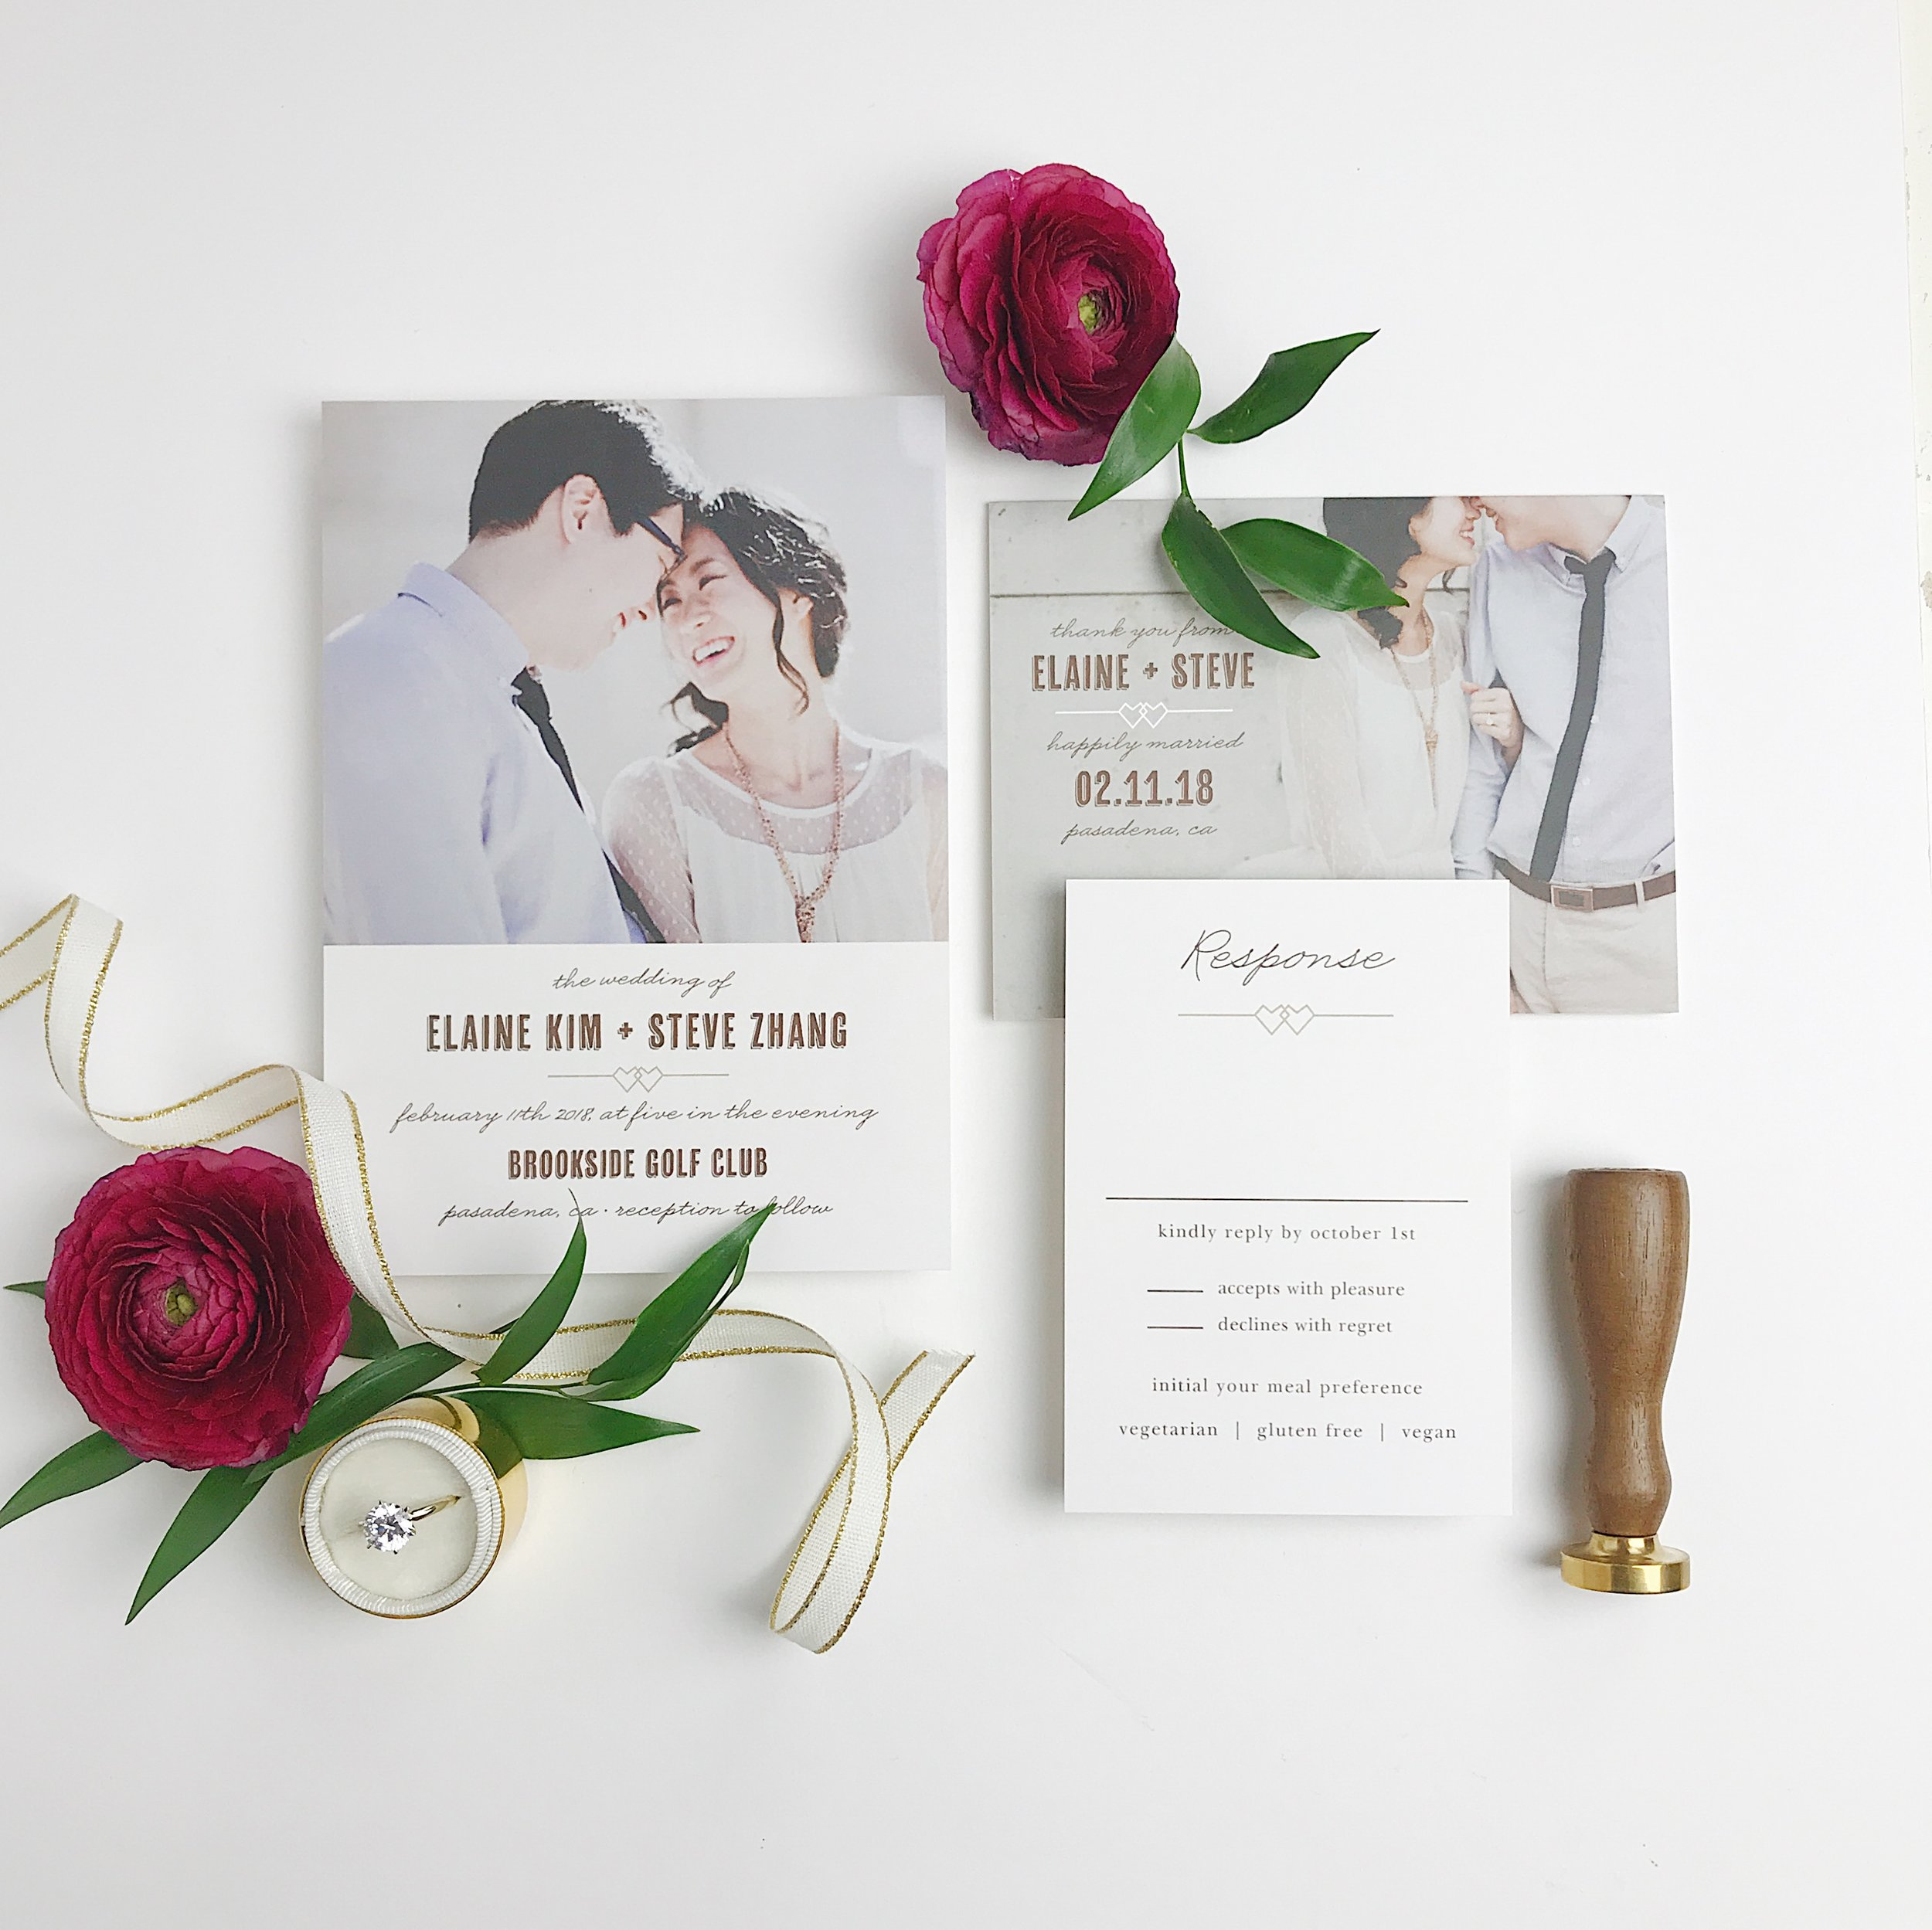 Personalize your wedding invitations with photos for a more personal touch!